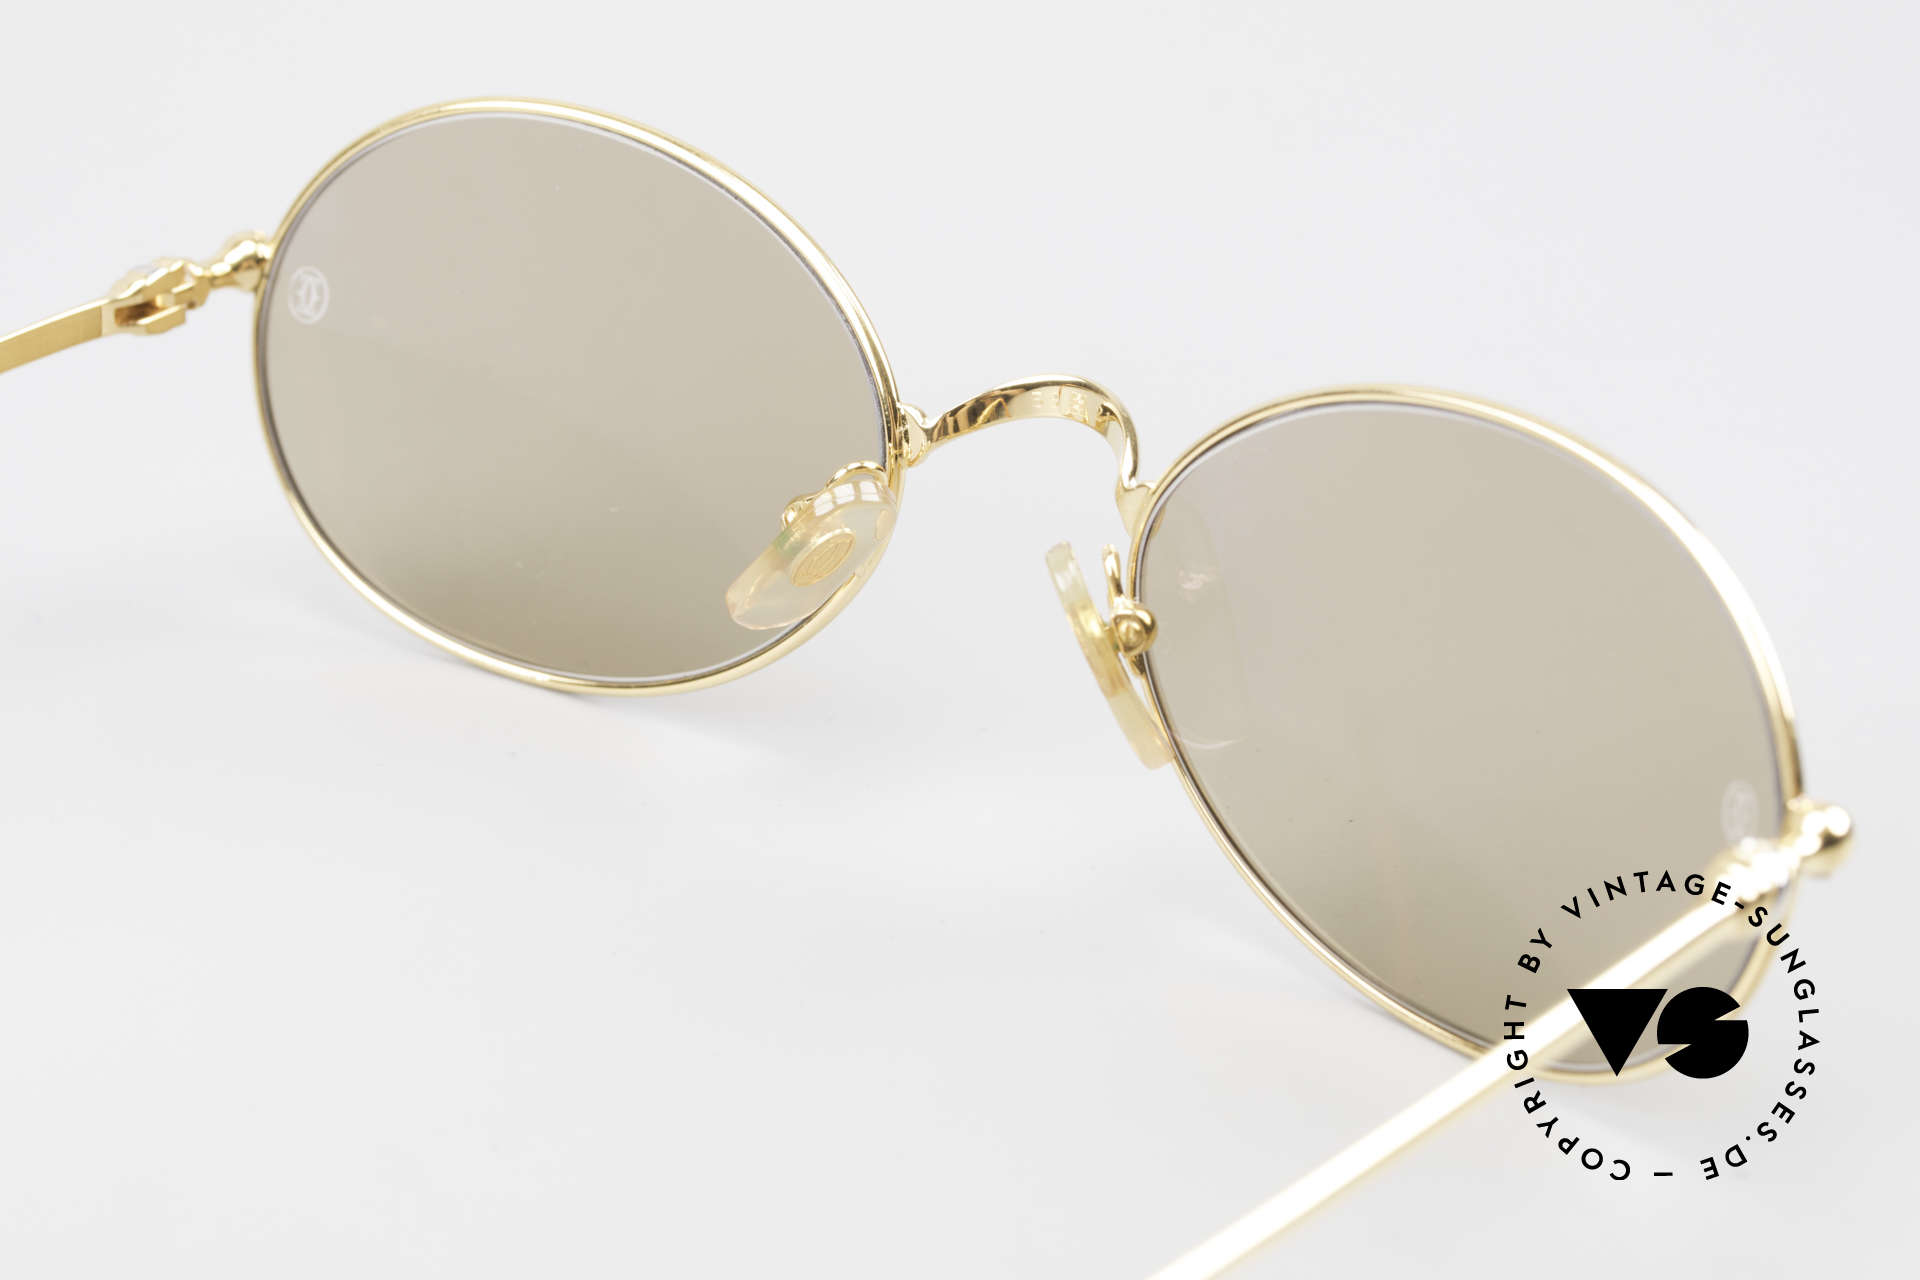 Cartier Saturne - L Oval 90's Luxury Sunglasses, NO RETRO eyewear; an old 90's original with GUCCI case, Made for Men and Women